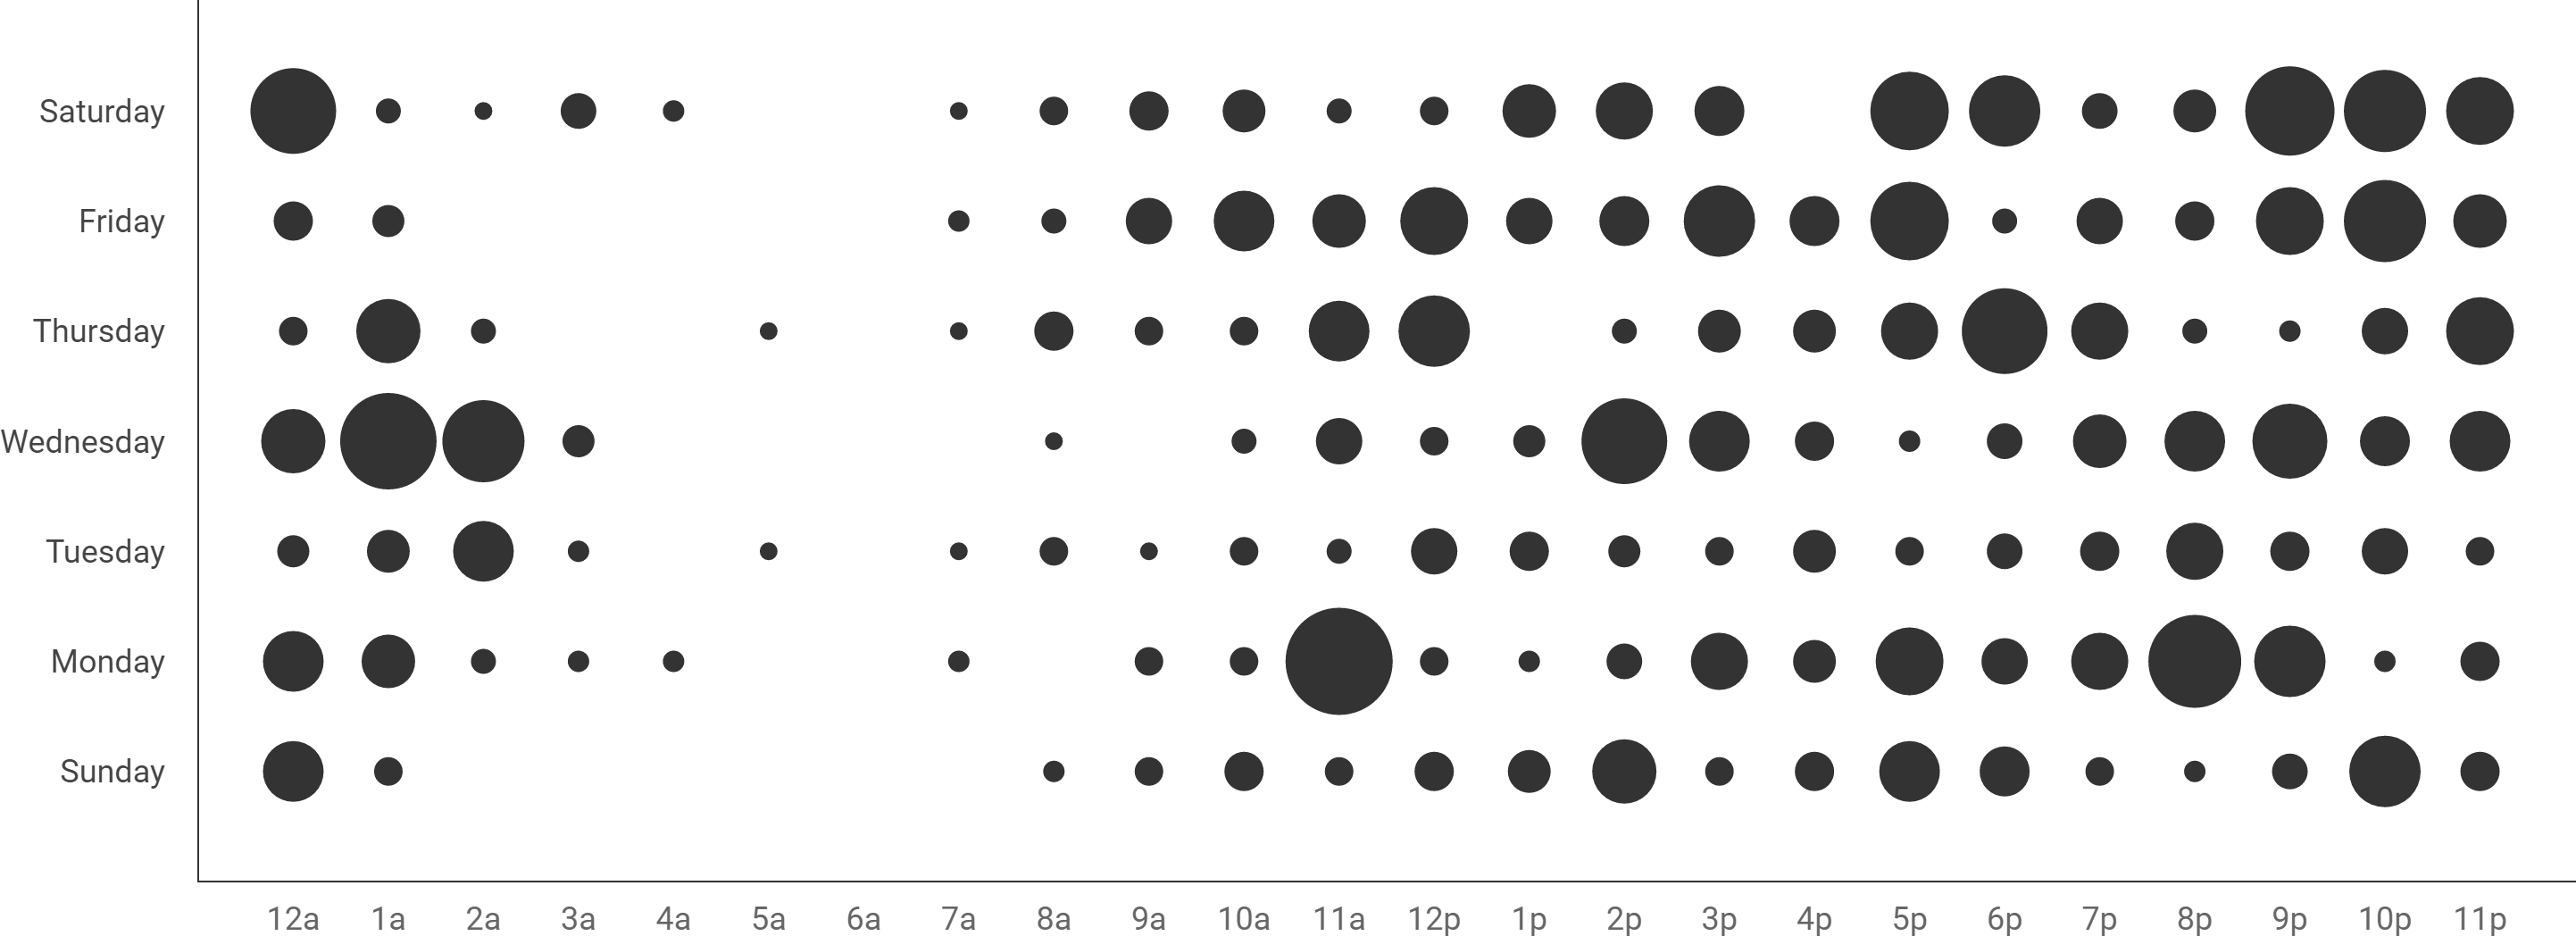 Punch card example